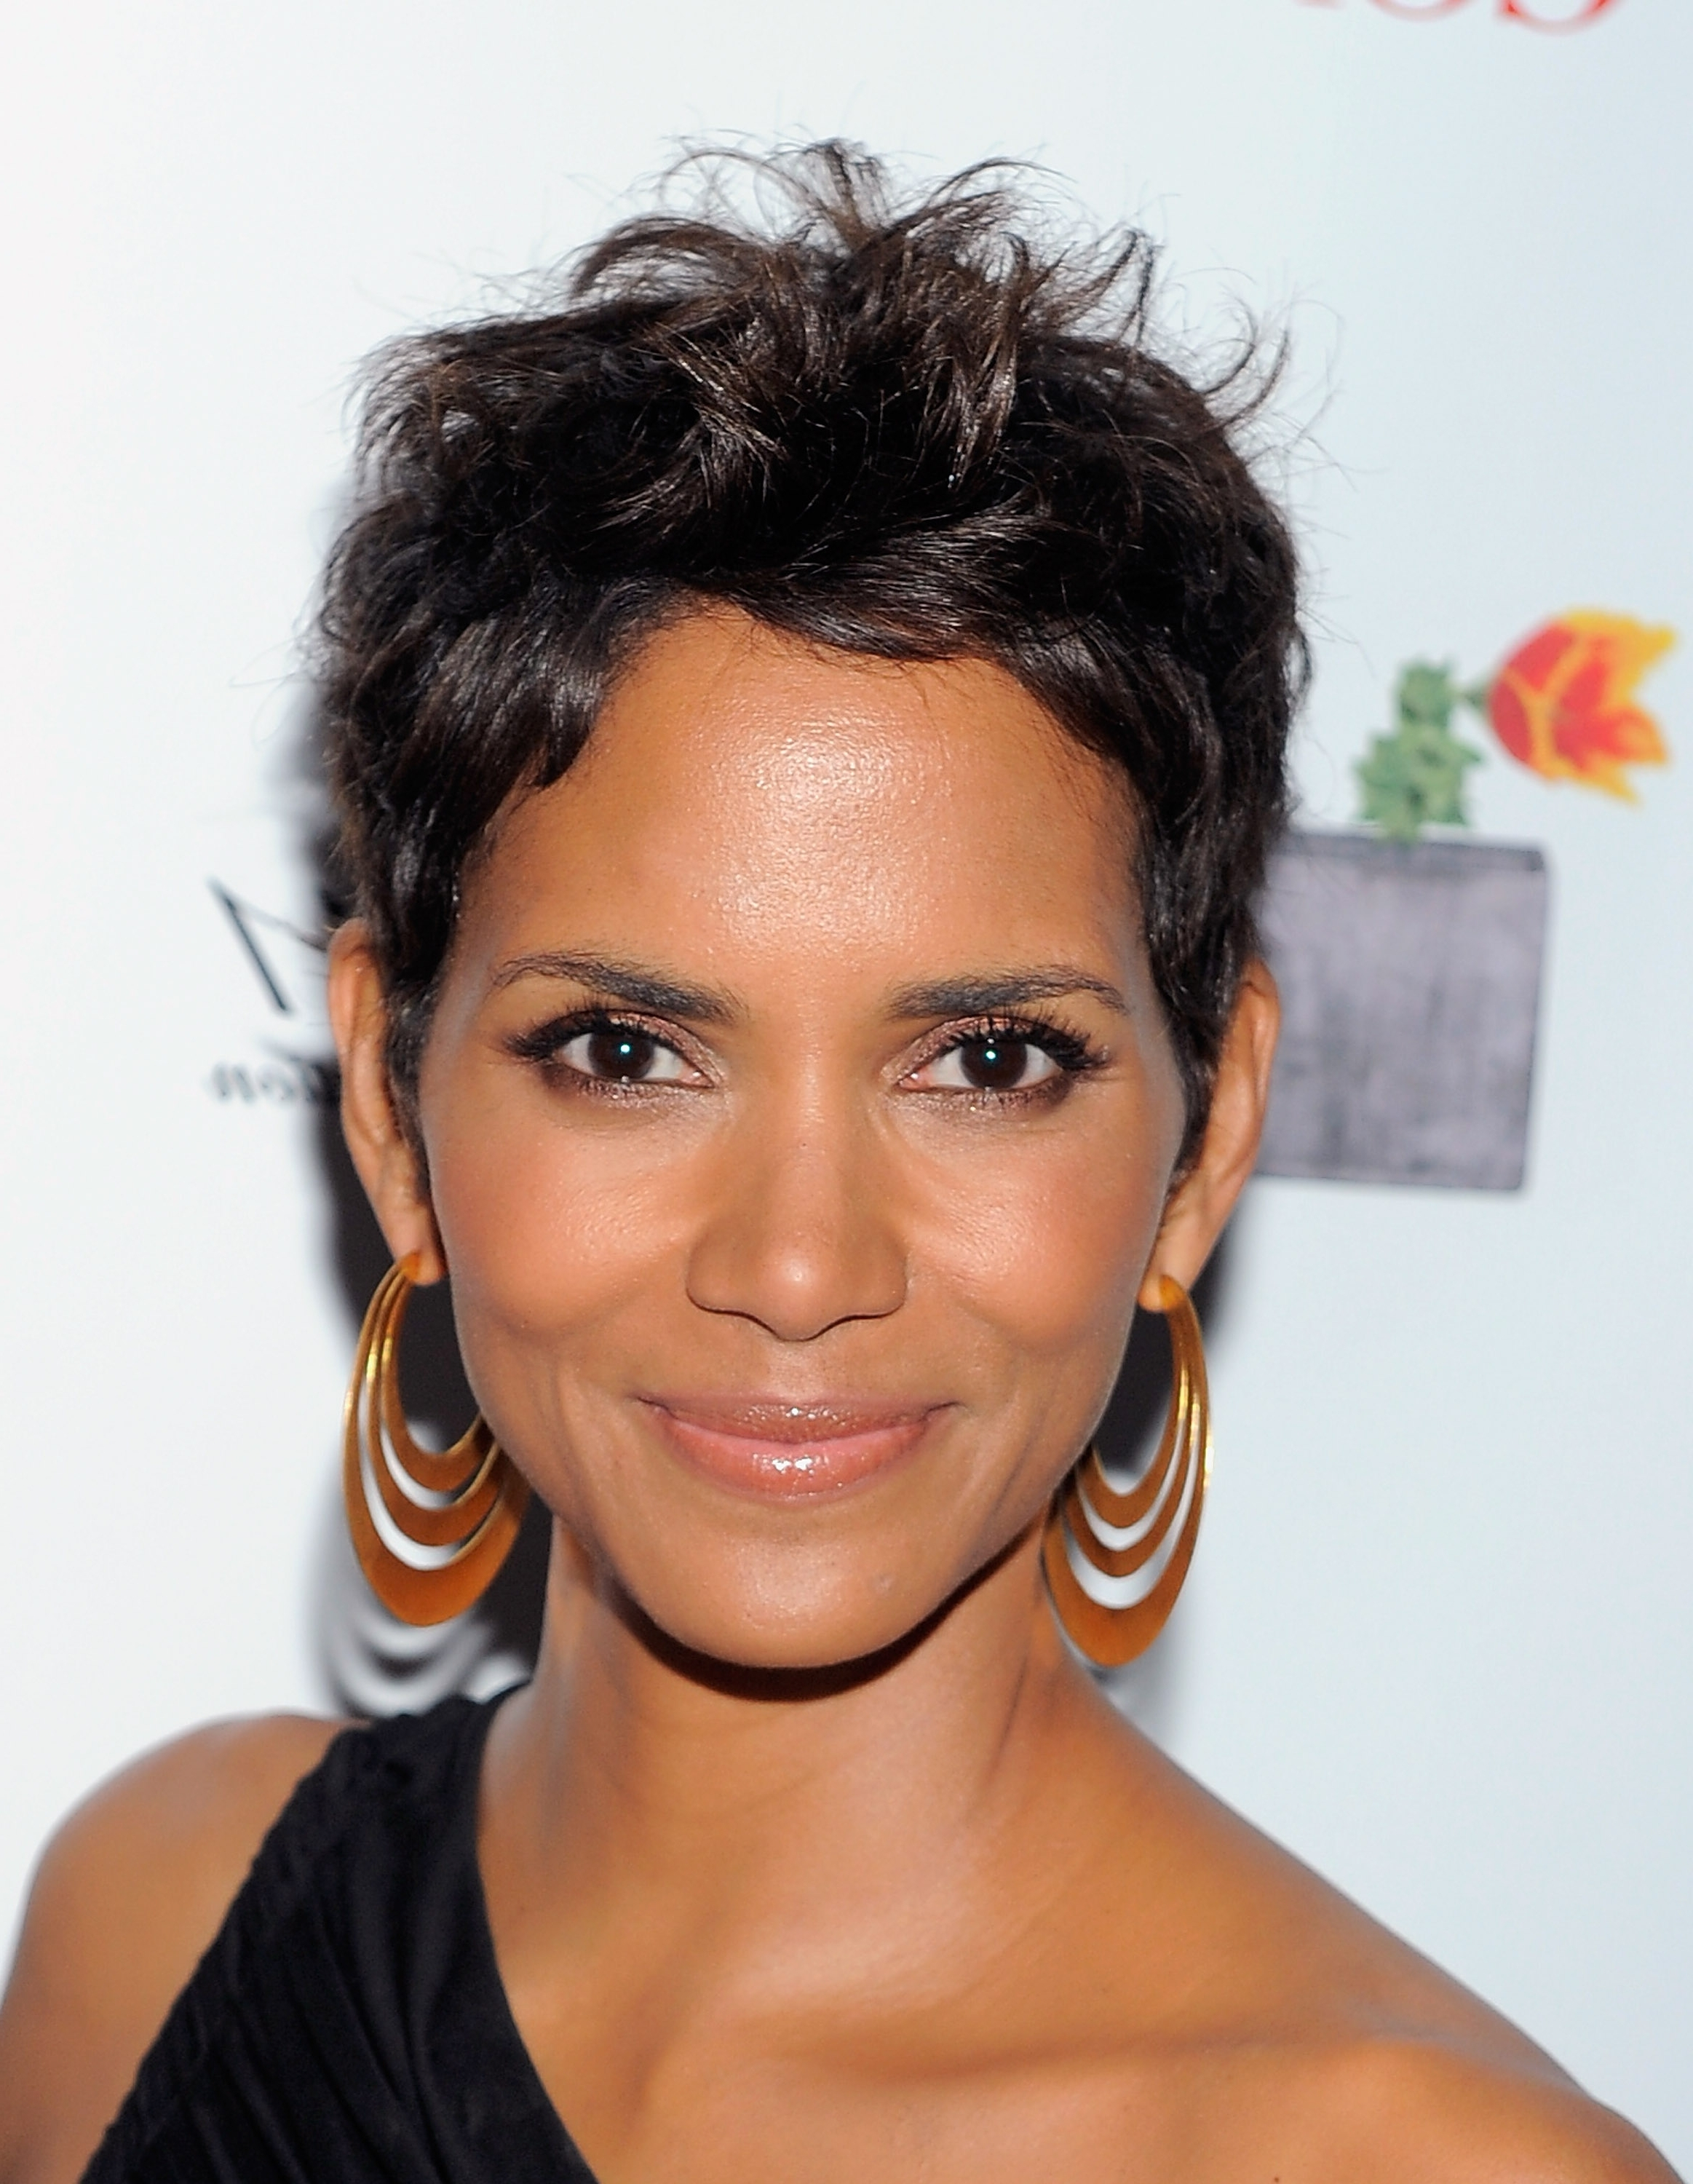 40 Best Short Pixie Cut Hairstyles 2018 – Cute Pixie Haircuts For For Most Recent Tousled Pixie Hairstyles (View 11 of 15)